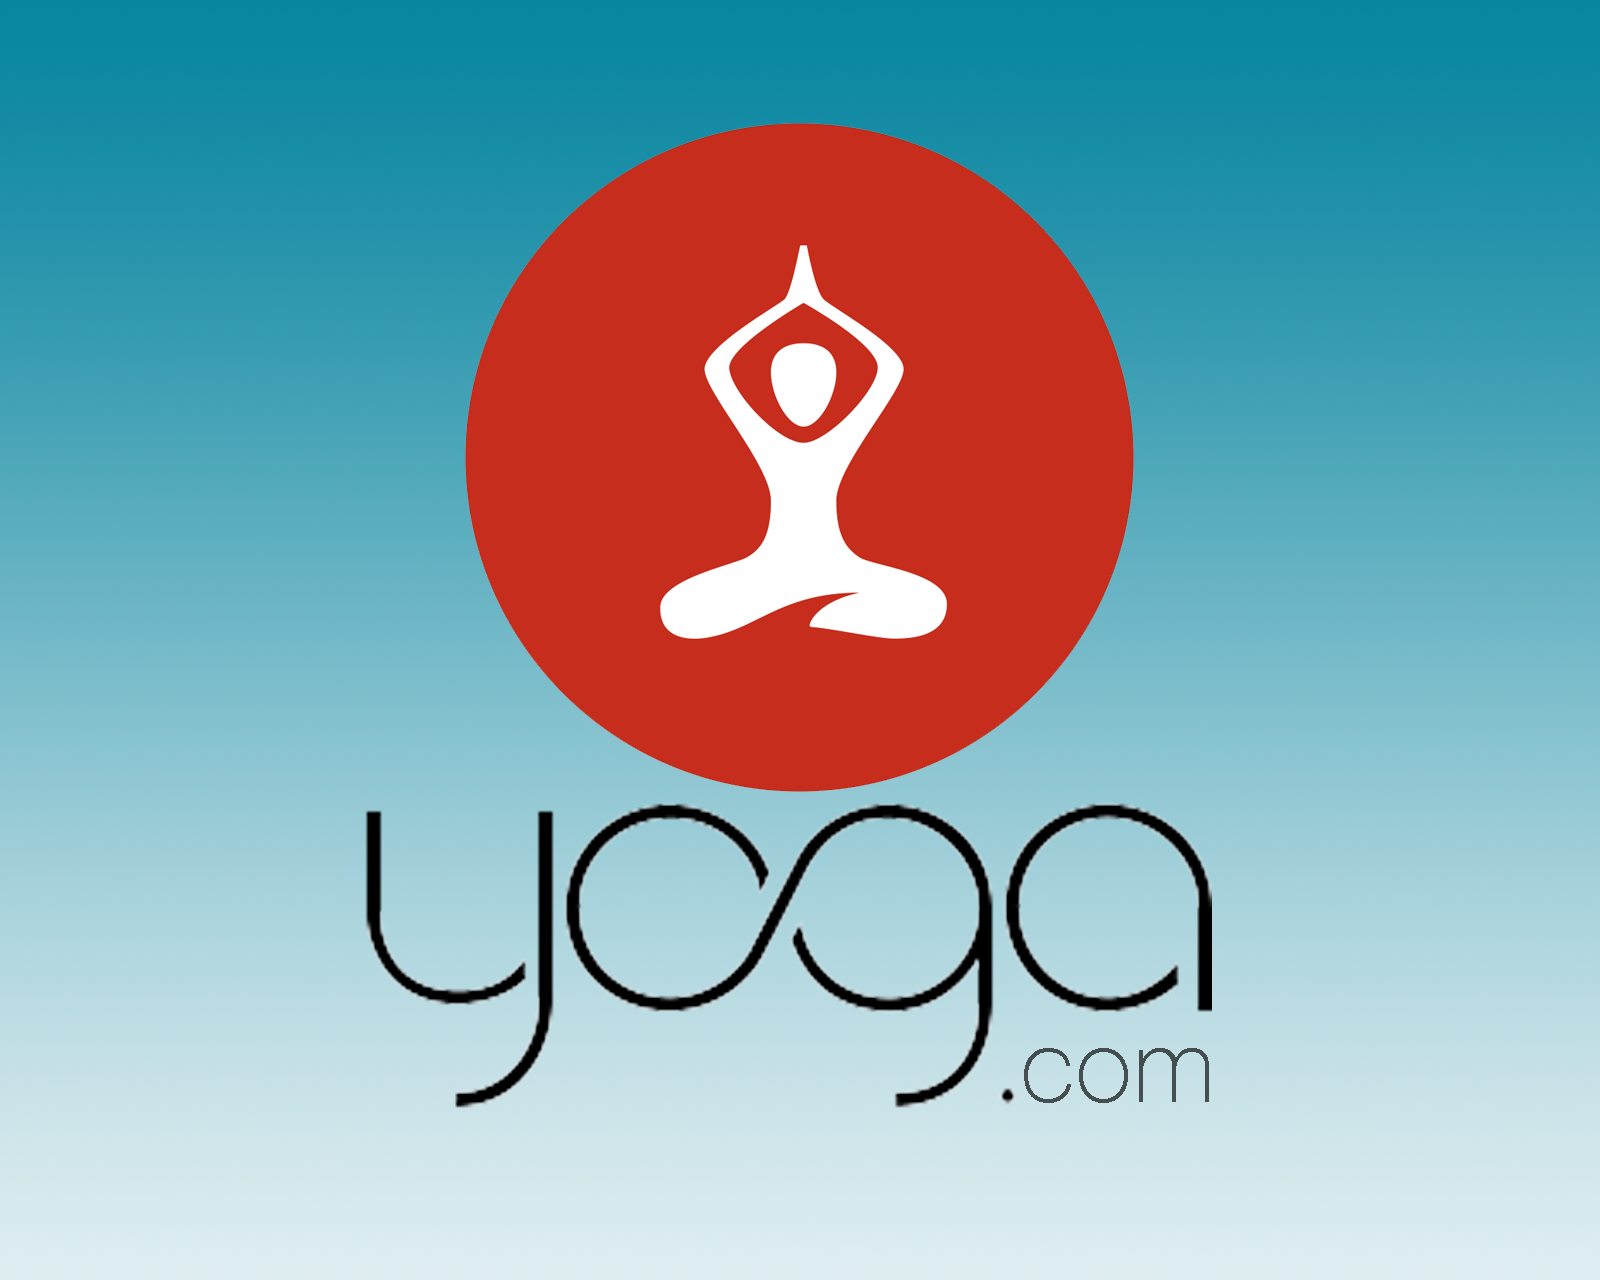 Yoga.com domain name